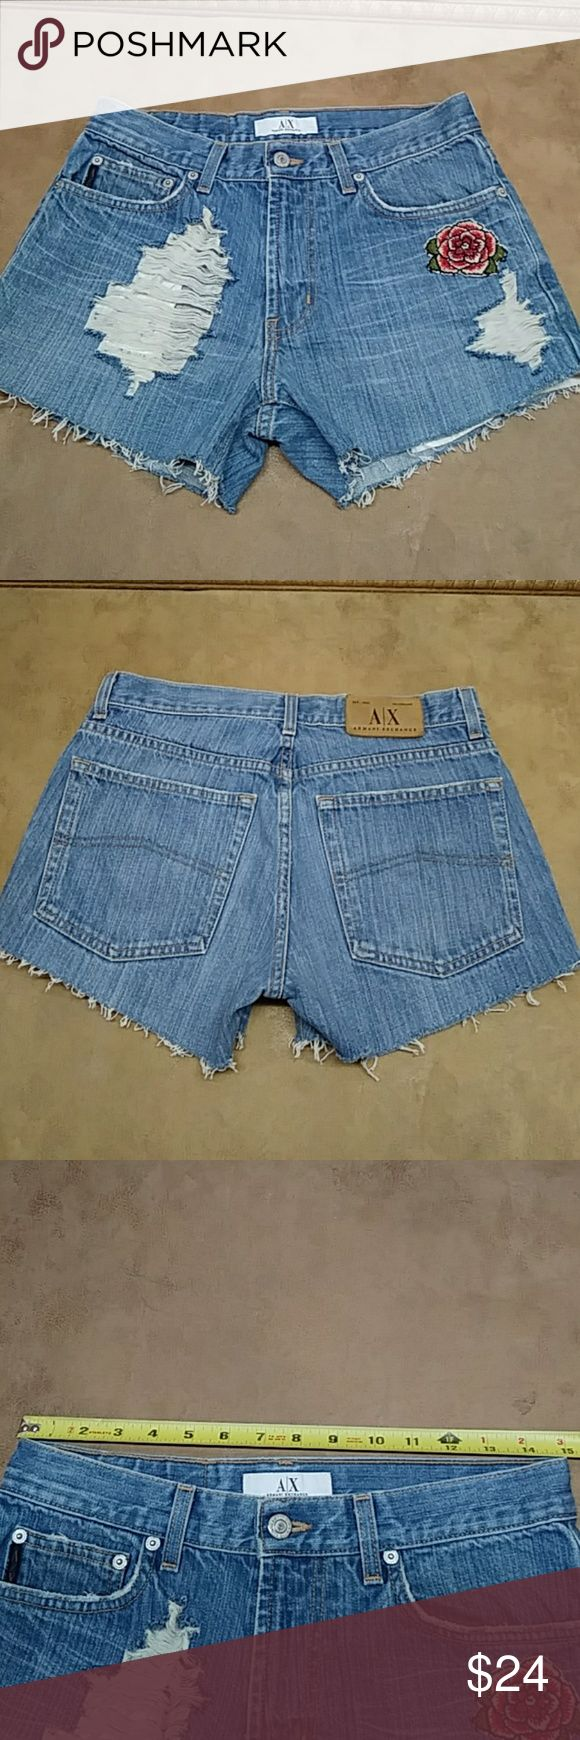 """Armani Exchange distressed jean shorts 30 Cute distressed jean shorts with adorable flower patch. Here are the measurements lying flat: Waist:15"""" Rise:9.5"""" Inseam:3"""" Outer Seam:10.5"""" Armani Exchange Shorts Jean Shorts"""